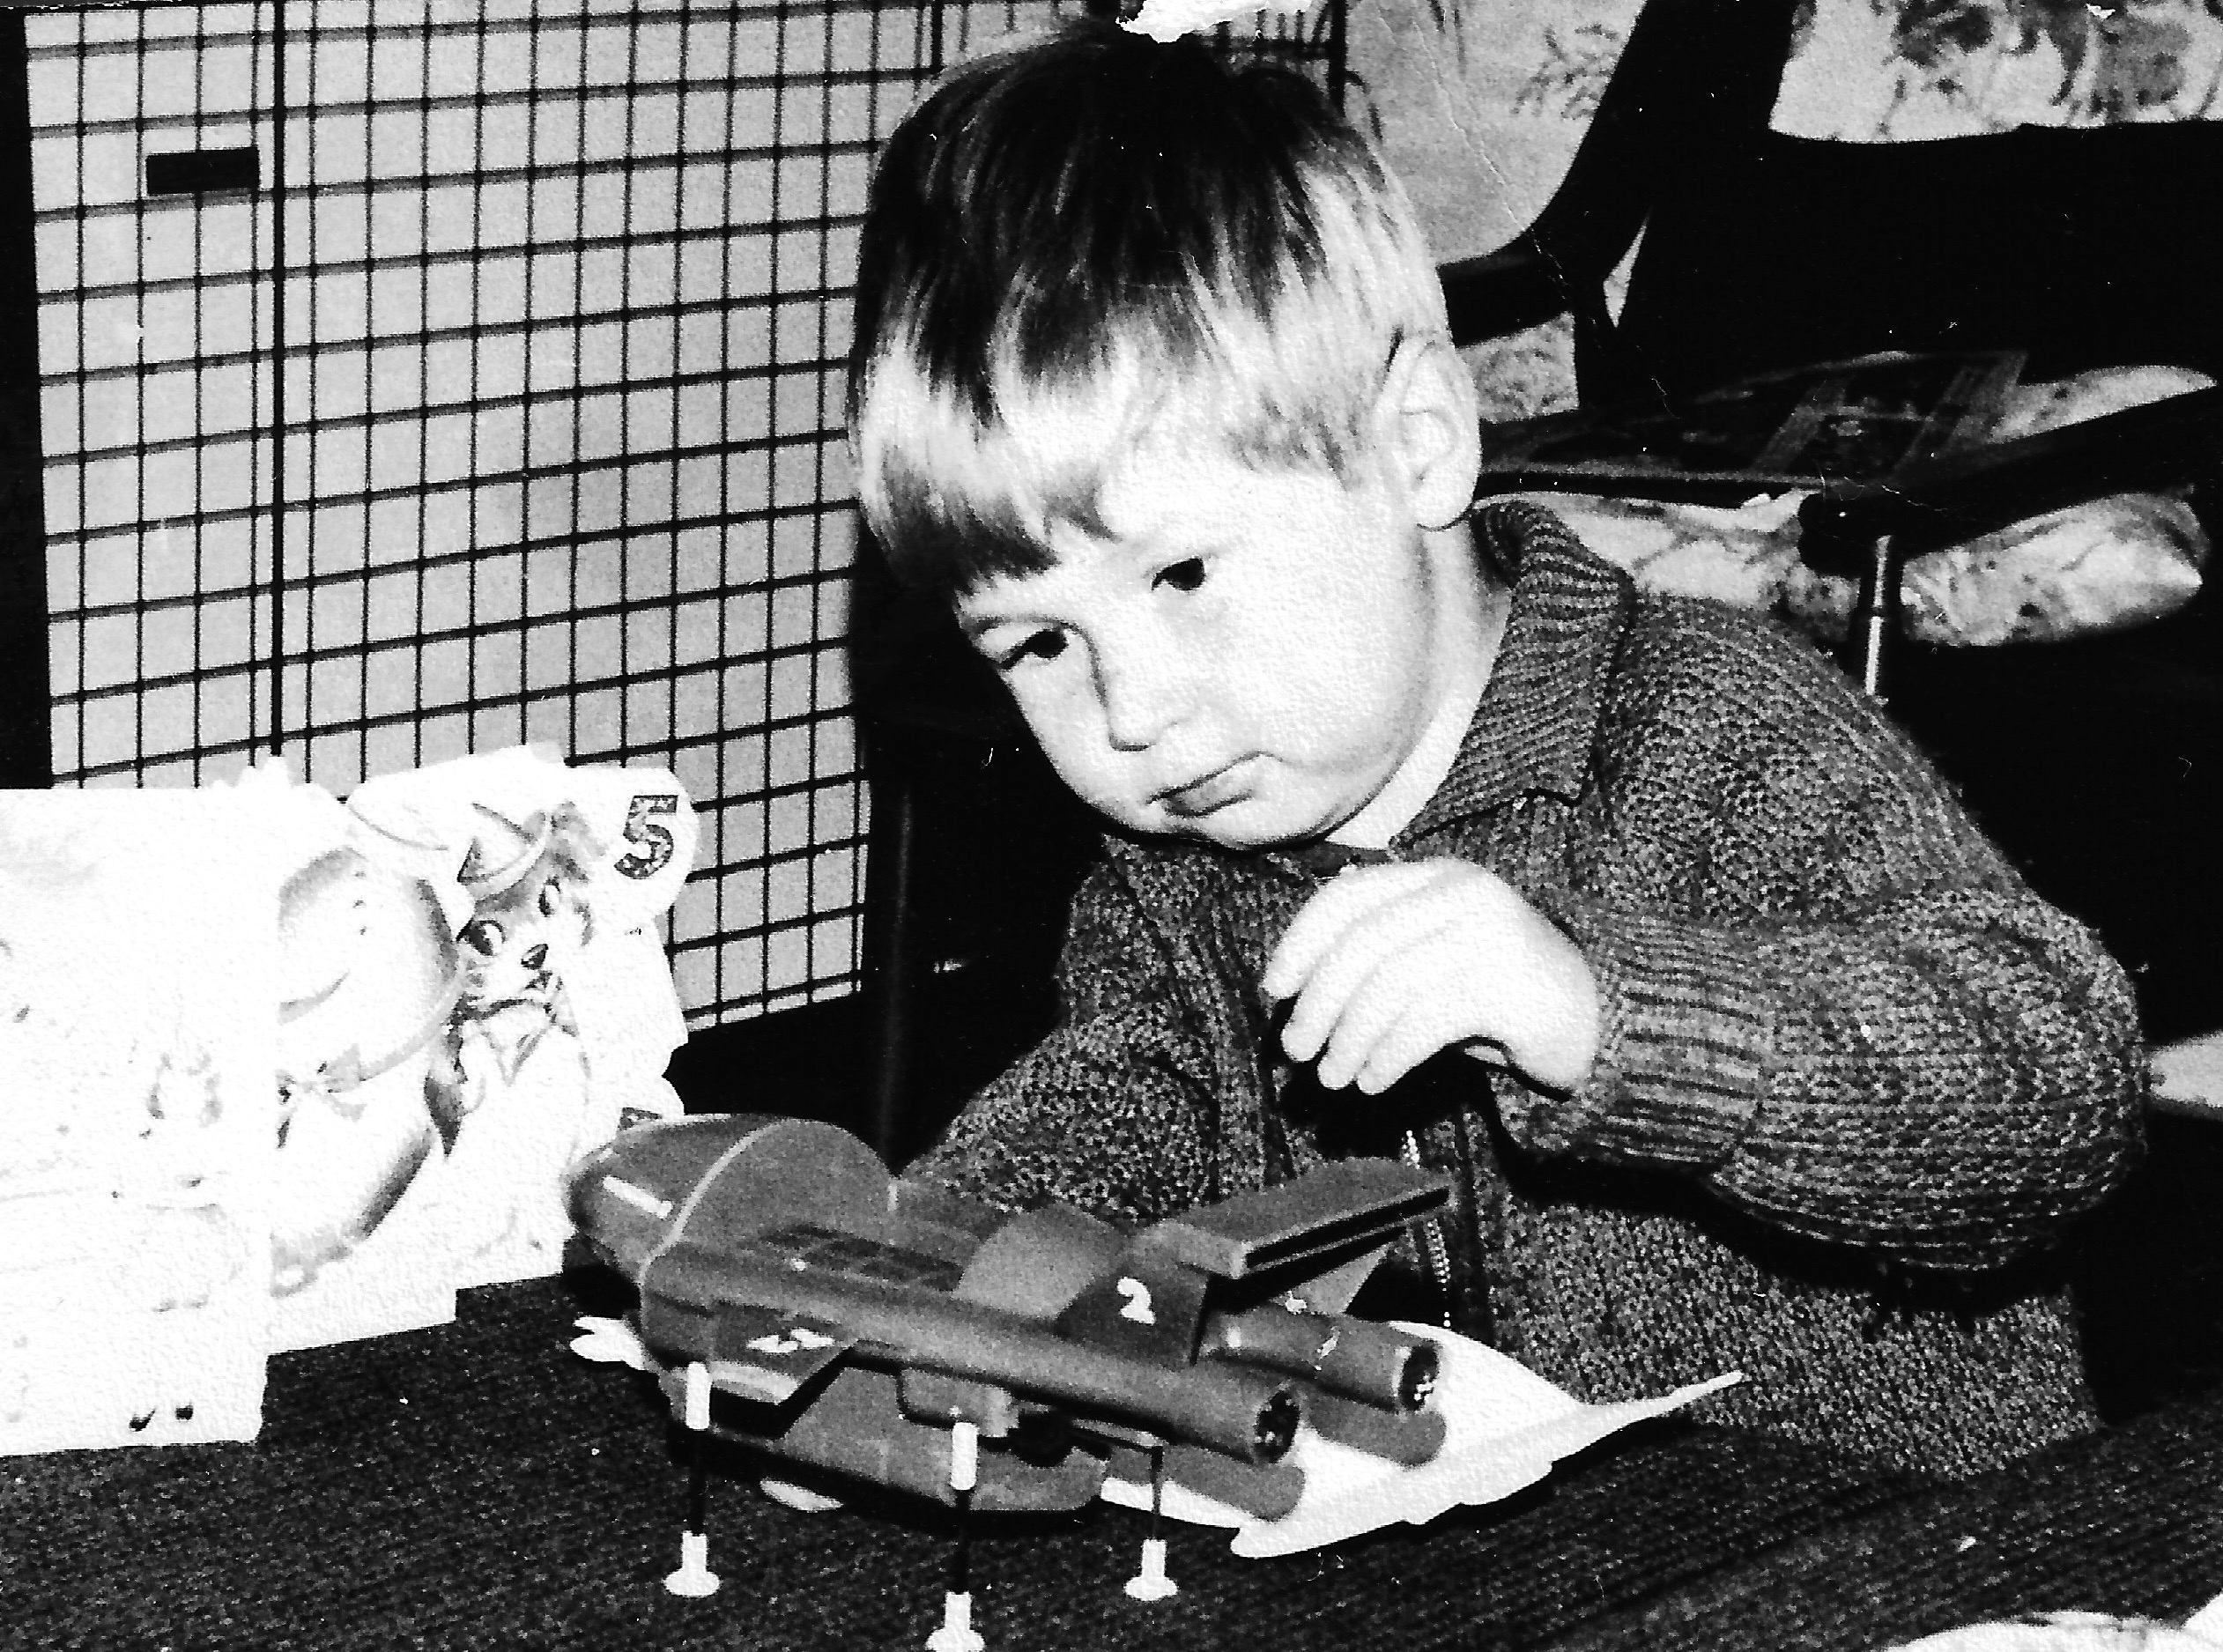 Black & white photo of Vince playing with a Thunderbird 2 model